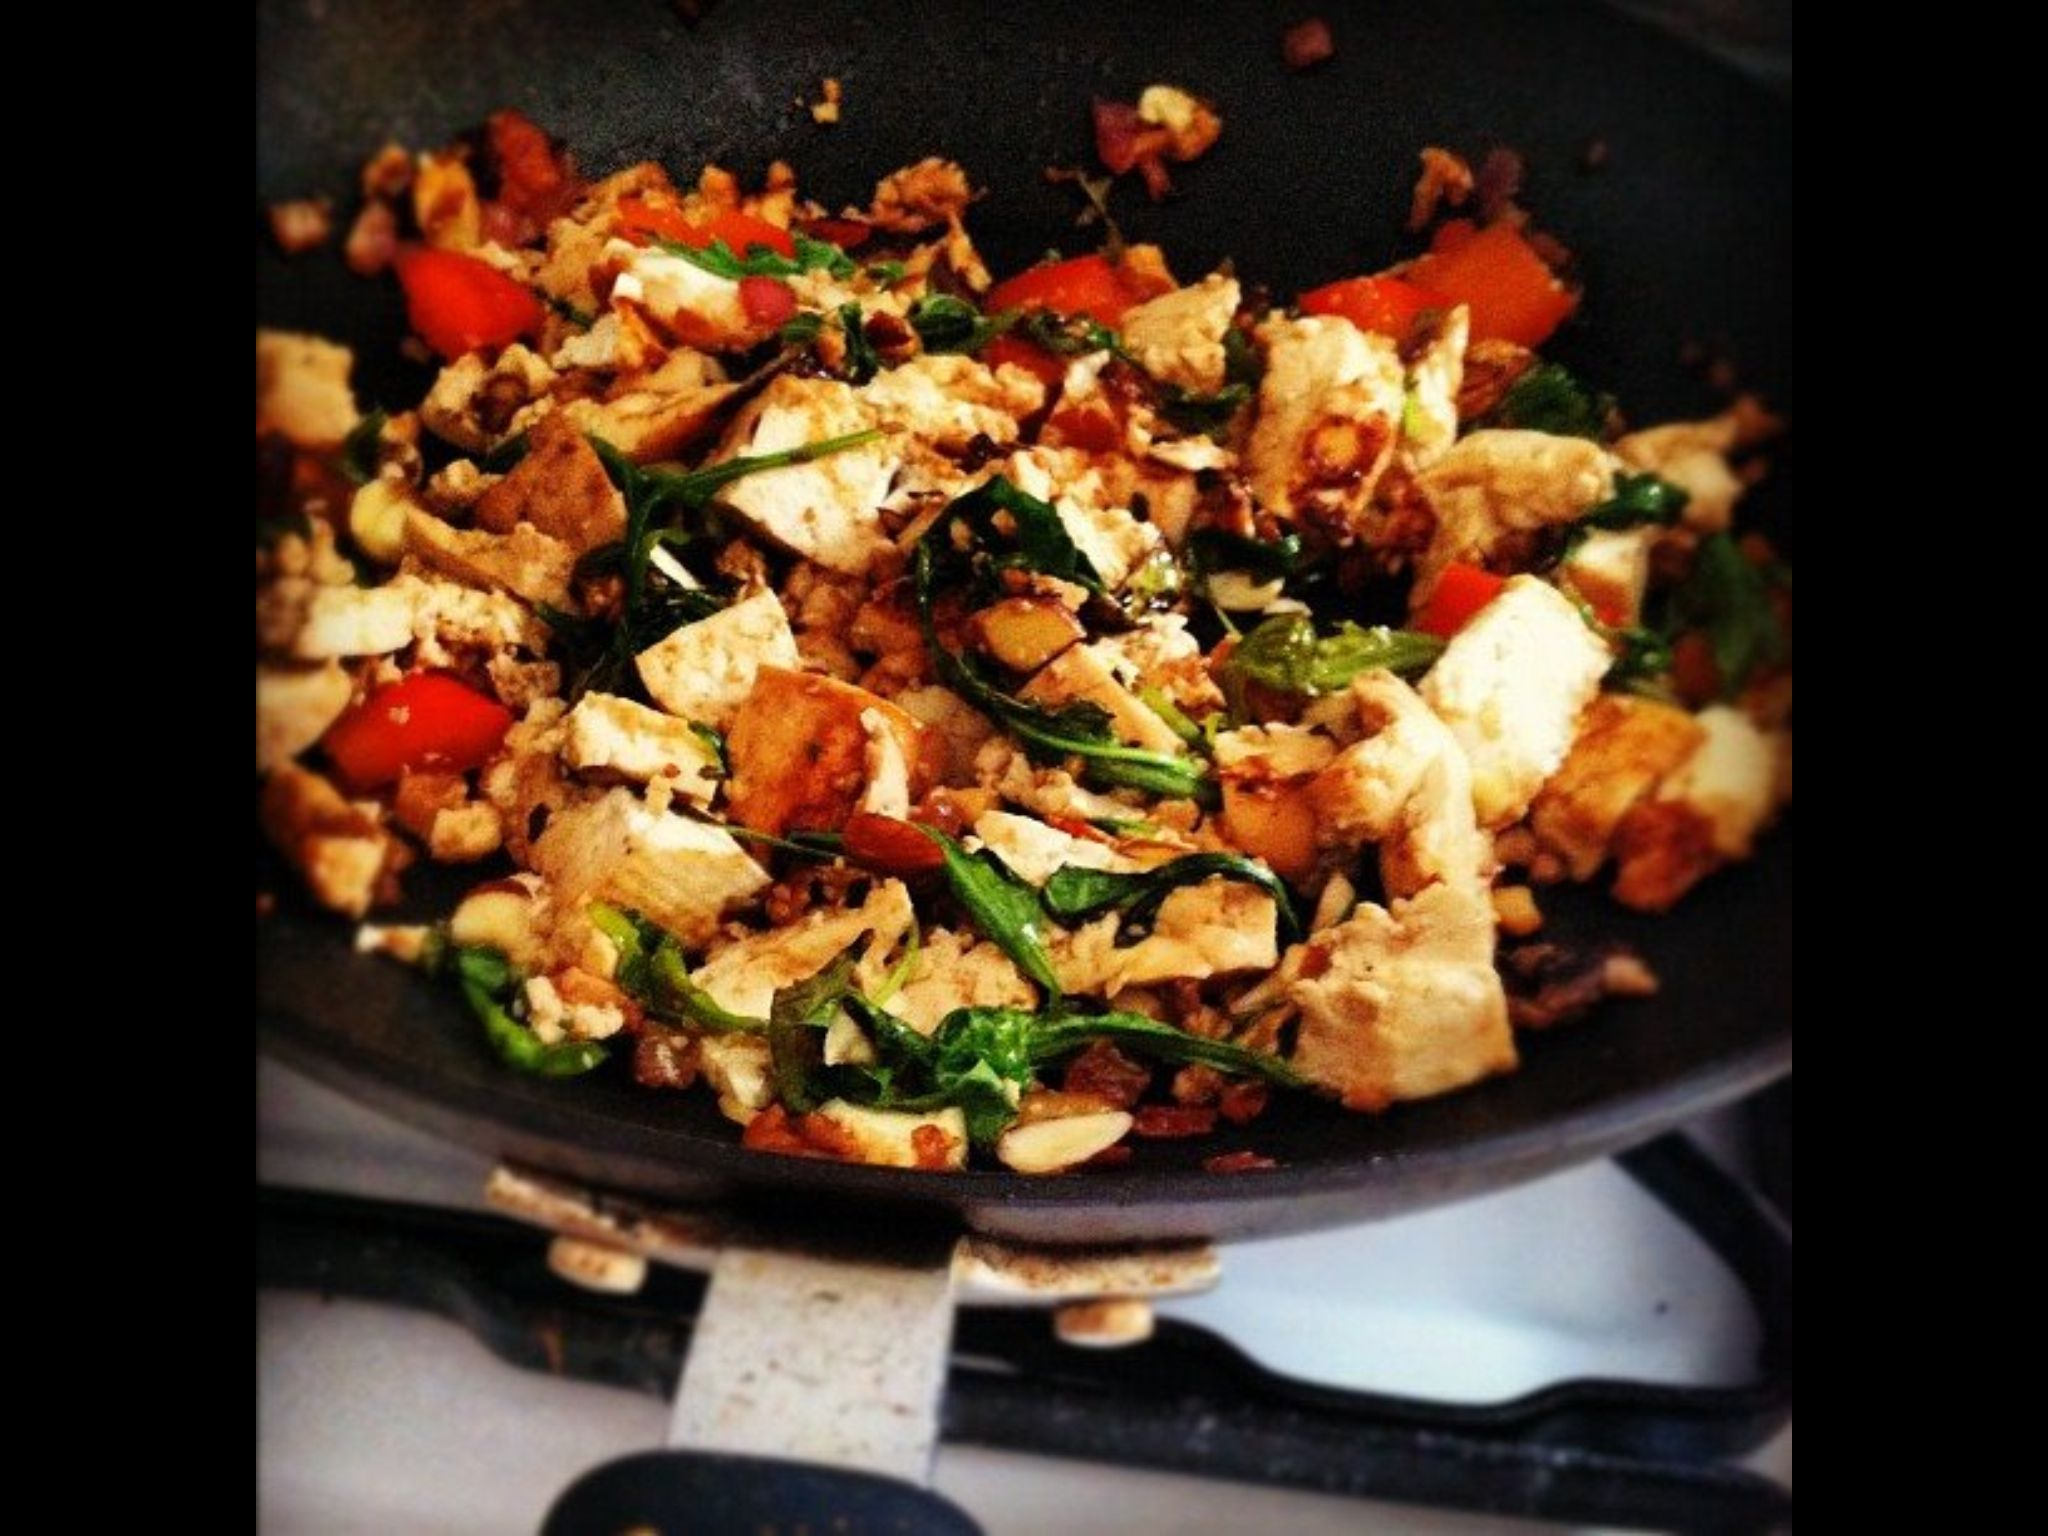 Scrambled Tofu. The perfect breakfast. Pan-fried ginger tofu with wilted arugula, red onions, garlic, roasted red peppers, basil, honey roasted walnuts with a hint of basil, pepper and turmeric seasoning. (For some more flavor add nutritional yeast, and soy sauce)